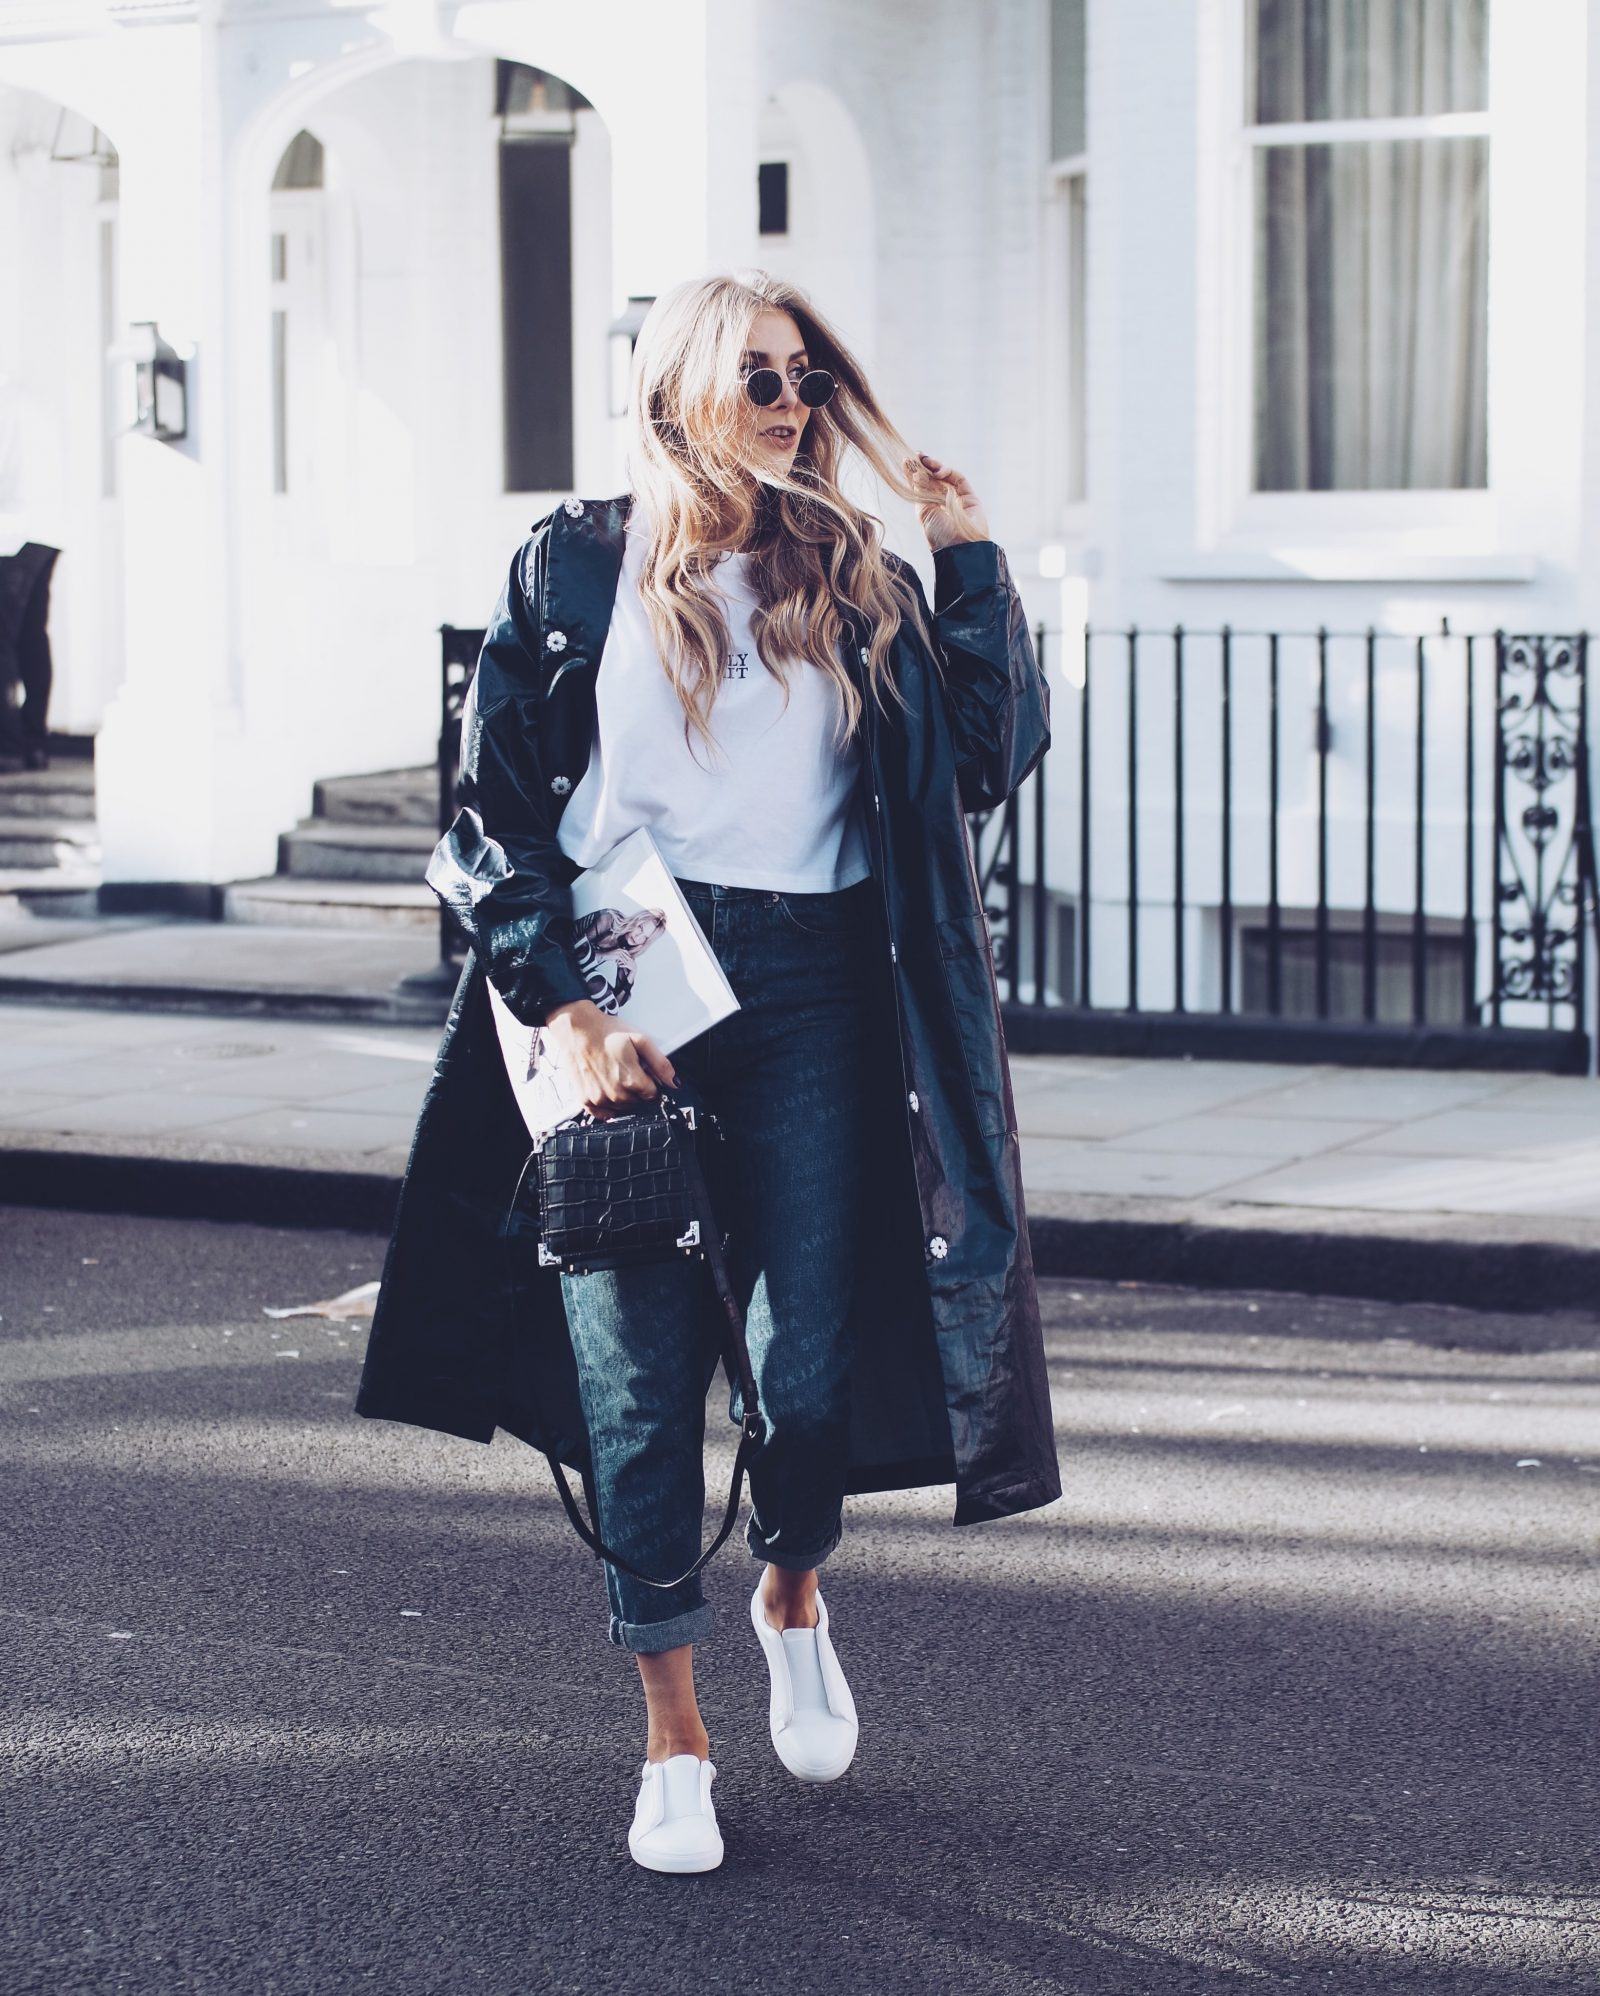 LFW Street Style - Blogger Style